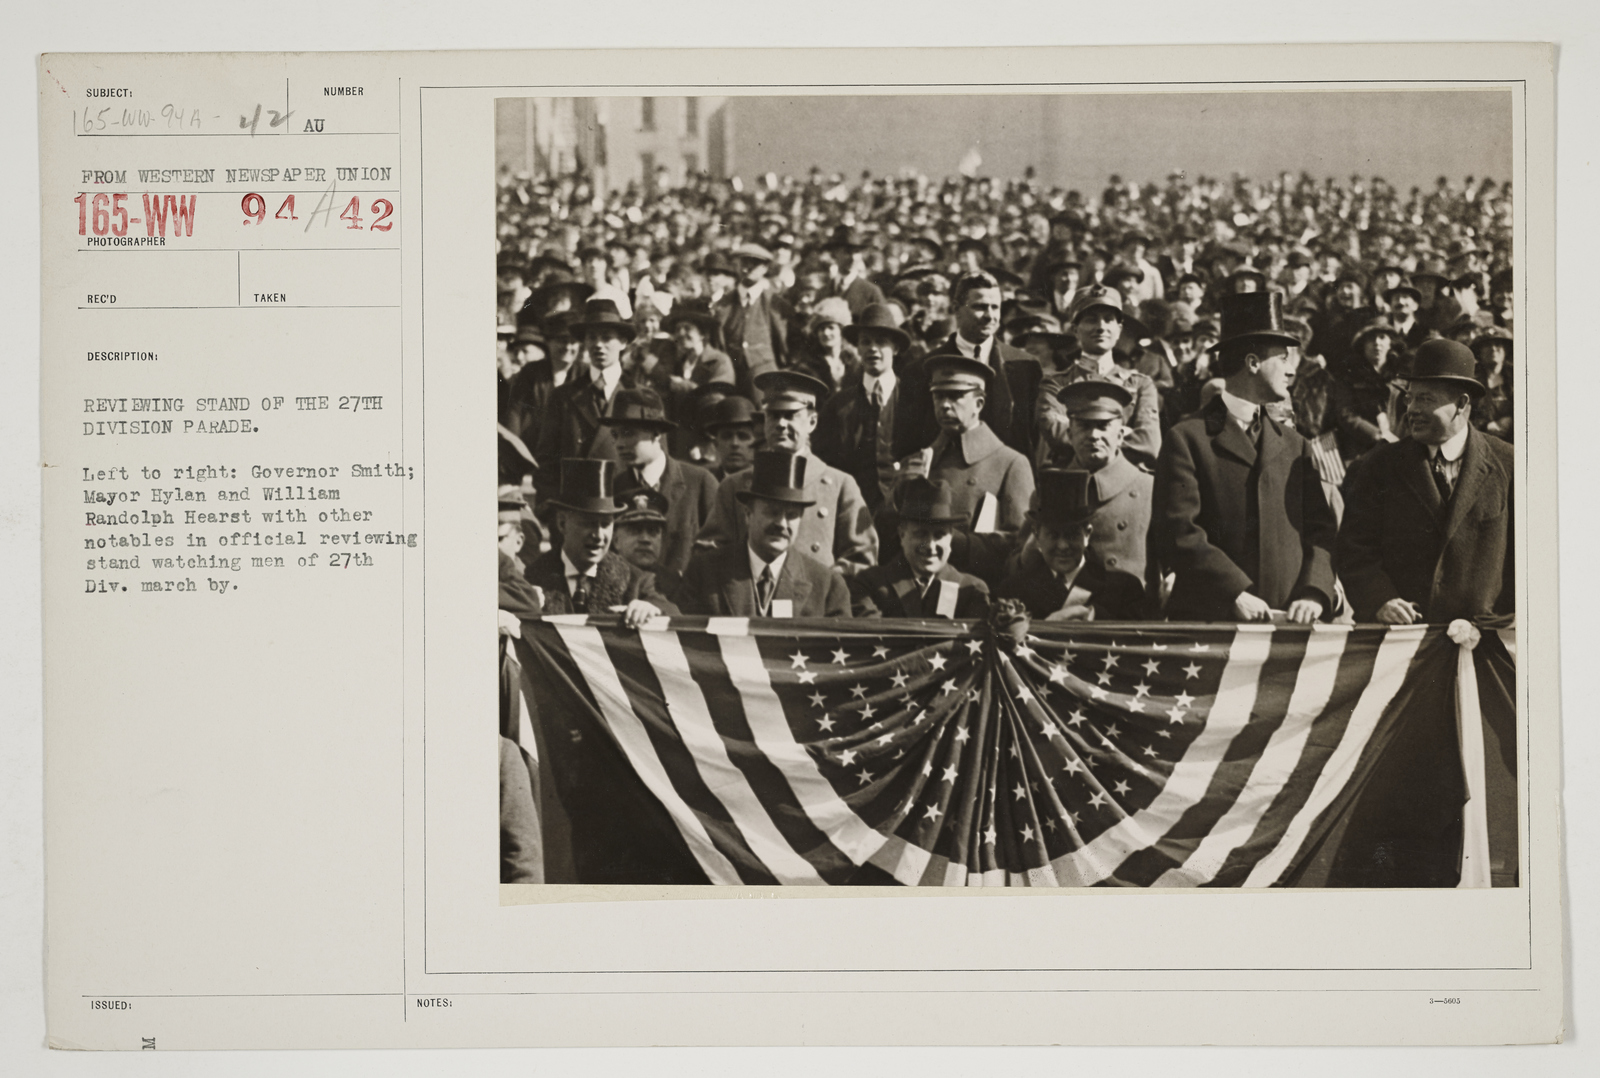 Ceremonies - Salutes and Parades - New York - Reviewing stand of  the 27th Division parade.  Left to right:  Governor Smith; Mayor Hylan and William Randolph Hearst with other notables in official reviewing stand watching men of 27th Division march by